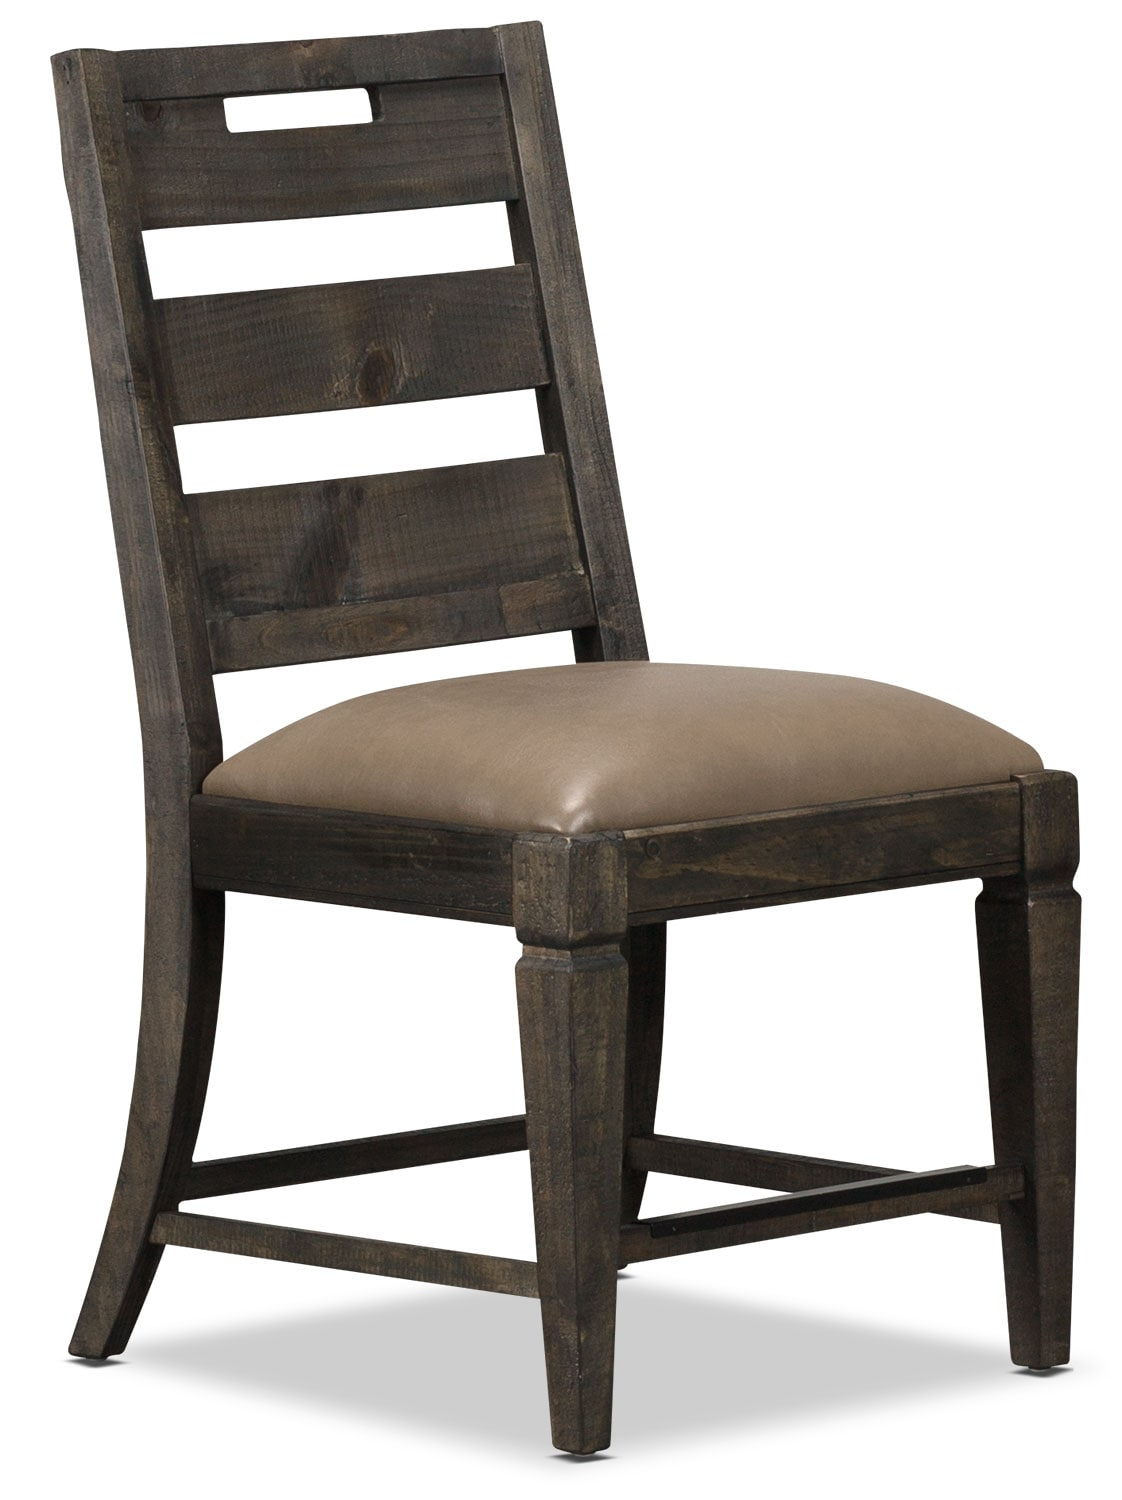 Dining Room Furniture - Calistoga Dining Chair